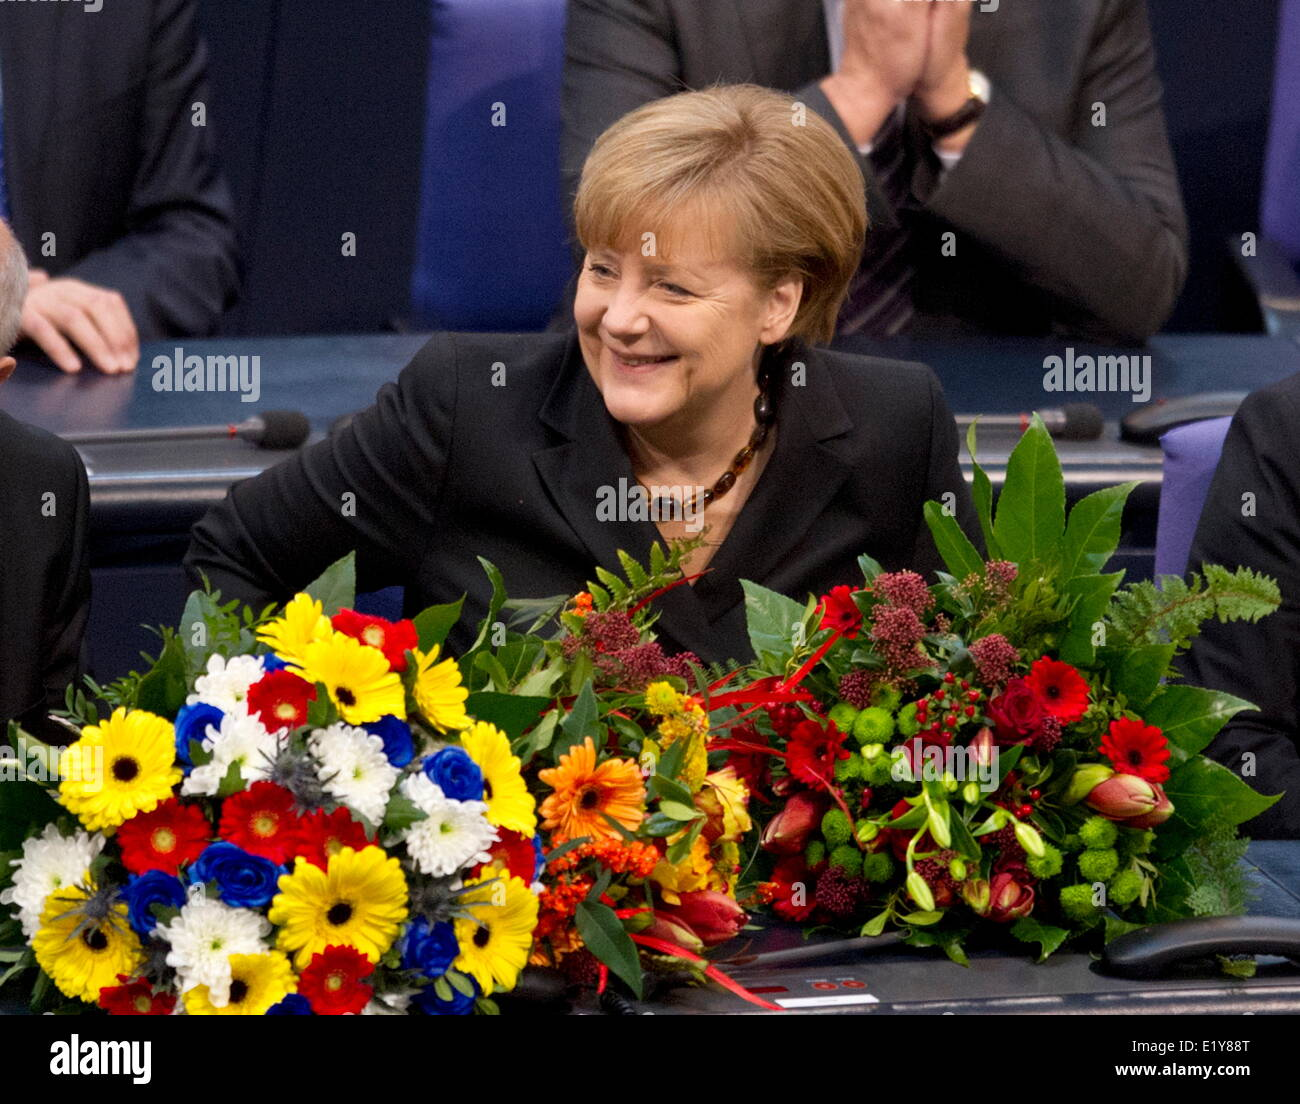 Dr. Angela Merkel takes her oath after having been elected as chancellor in the Bundestag on the 17th of December - Stock Image